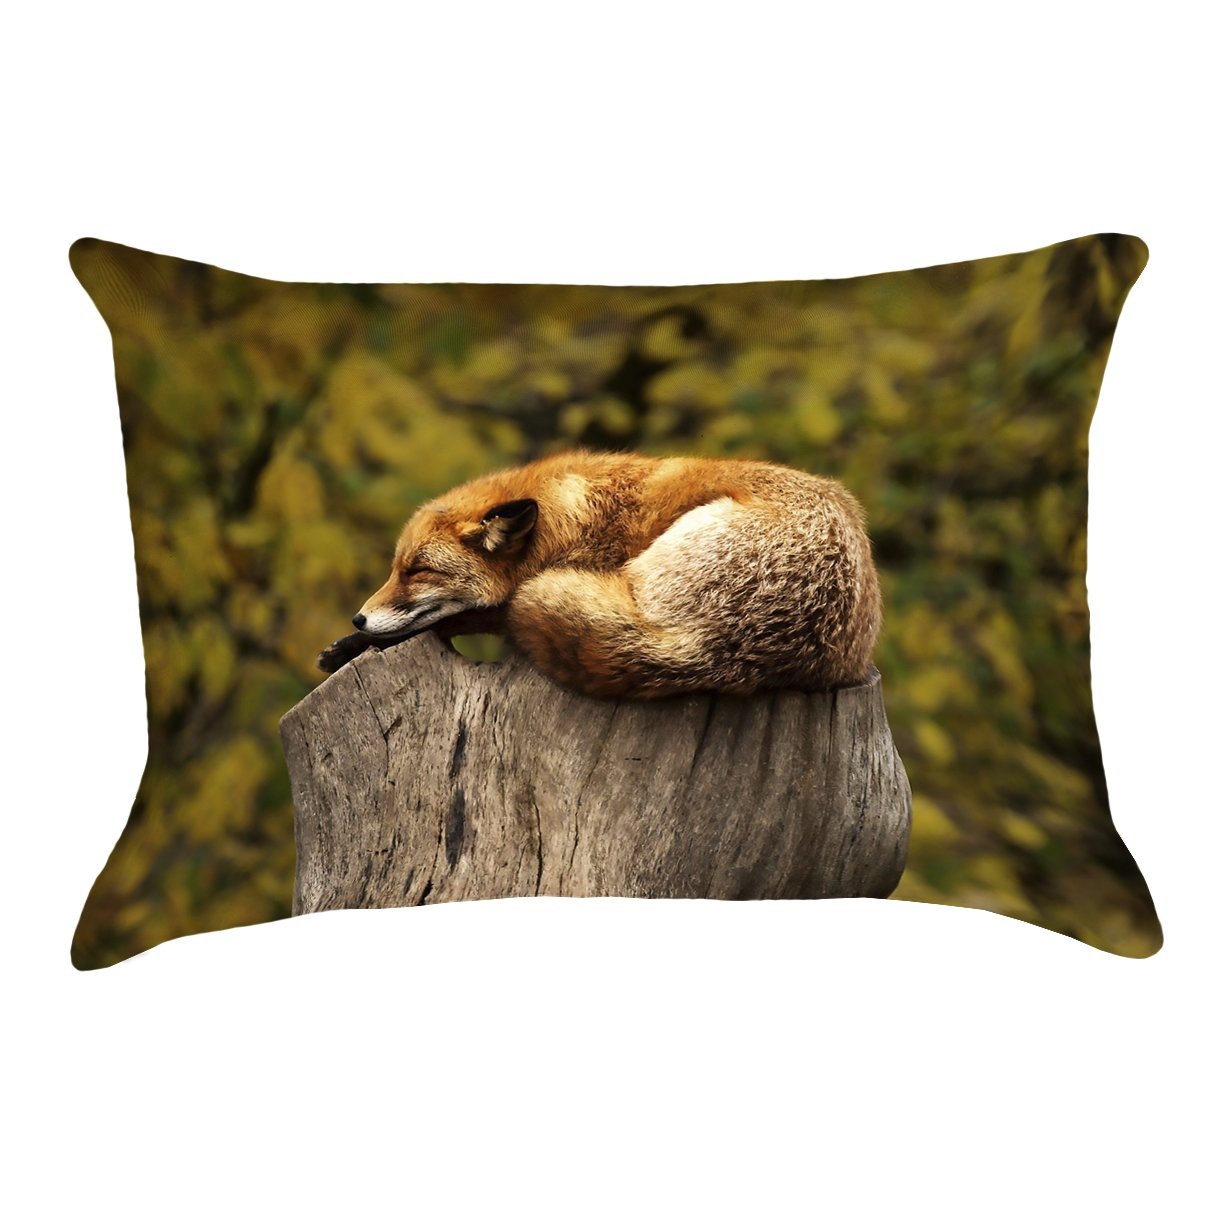 ArtVerse Katelyn Smith 14' x 20' Spun Polyester Double Sided Print with Concealed Zipper & Insert Sleeping Fox Pillow